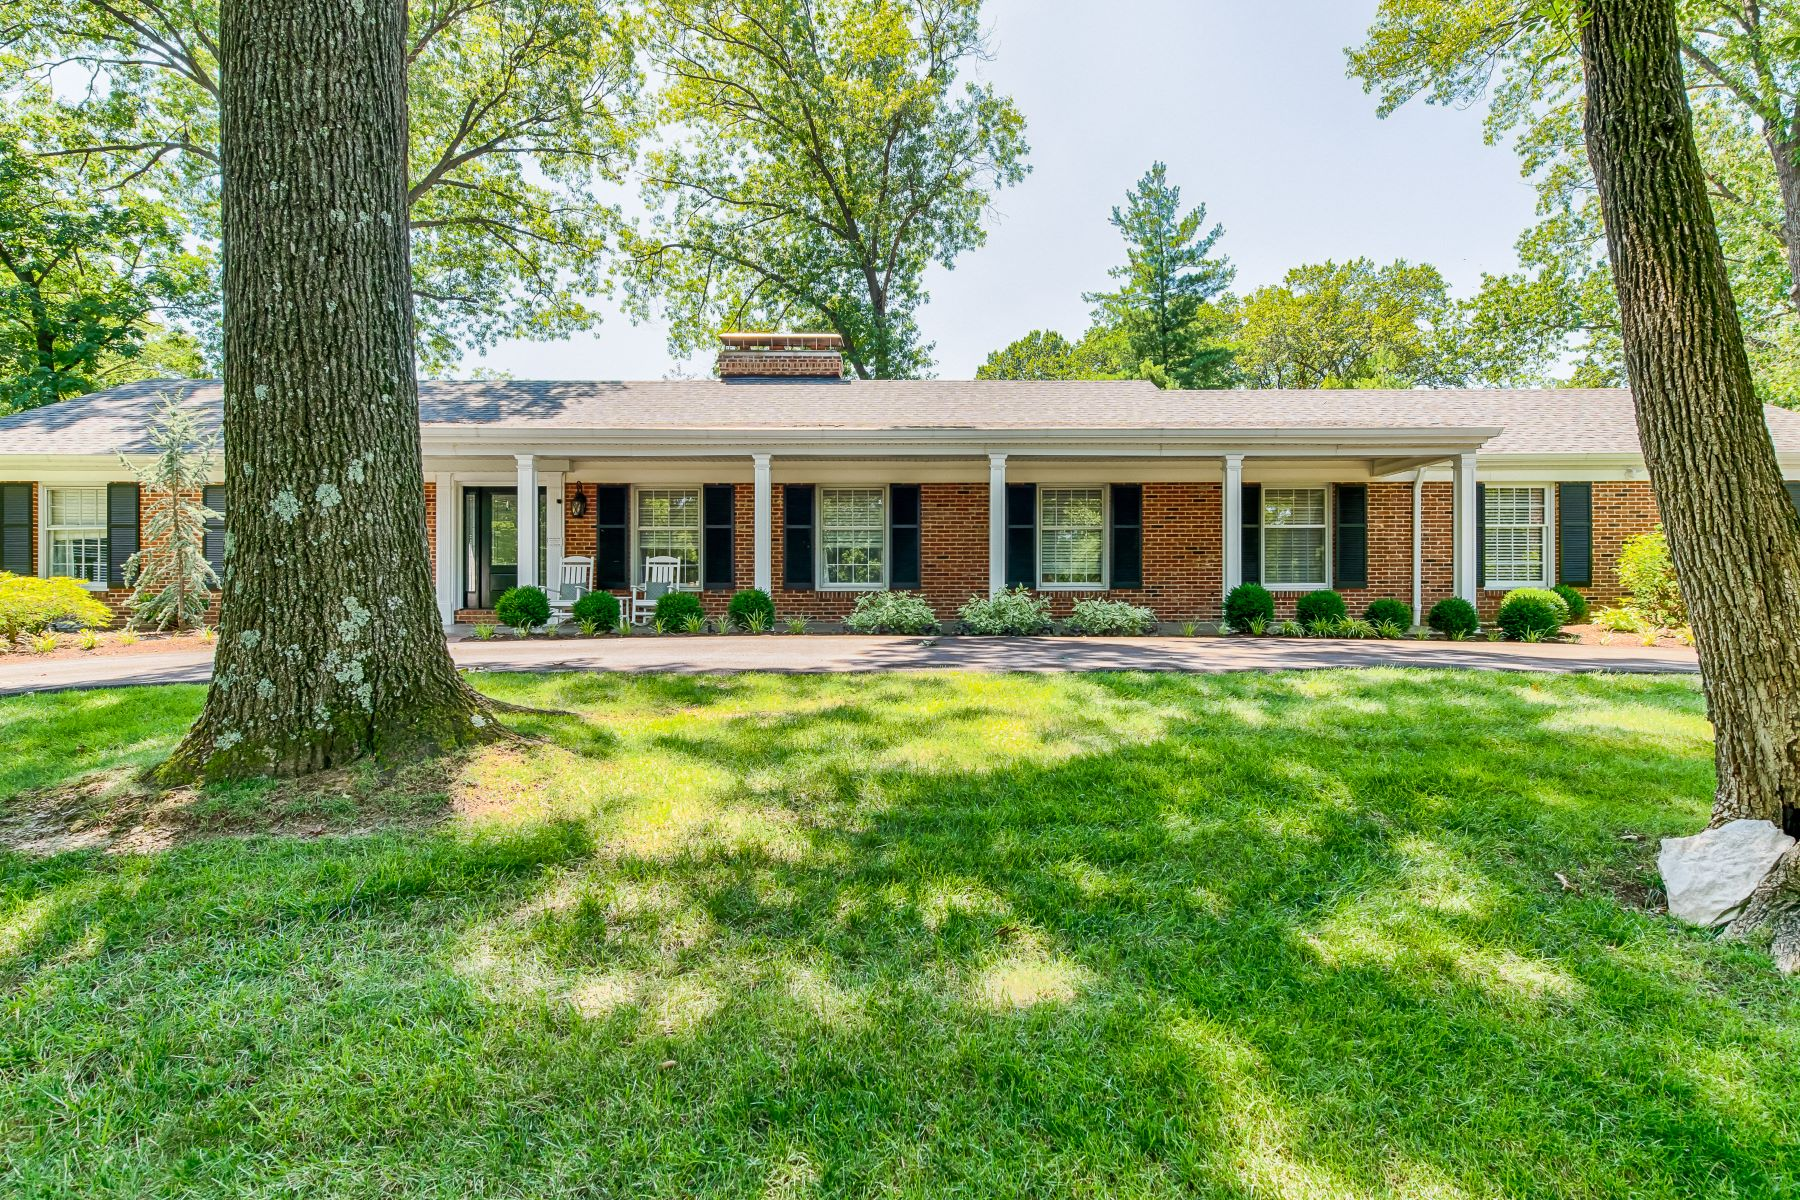 Single Family Homes for Sale at Updated Ladue ranch on over half an acre 9858 Copper Hill Road Ladue, Missouri 63124 United States